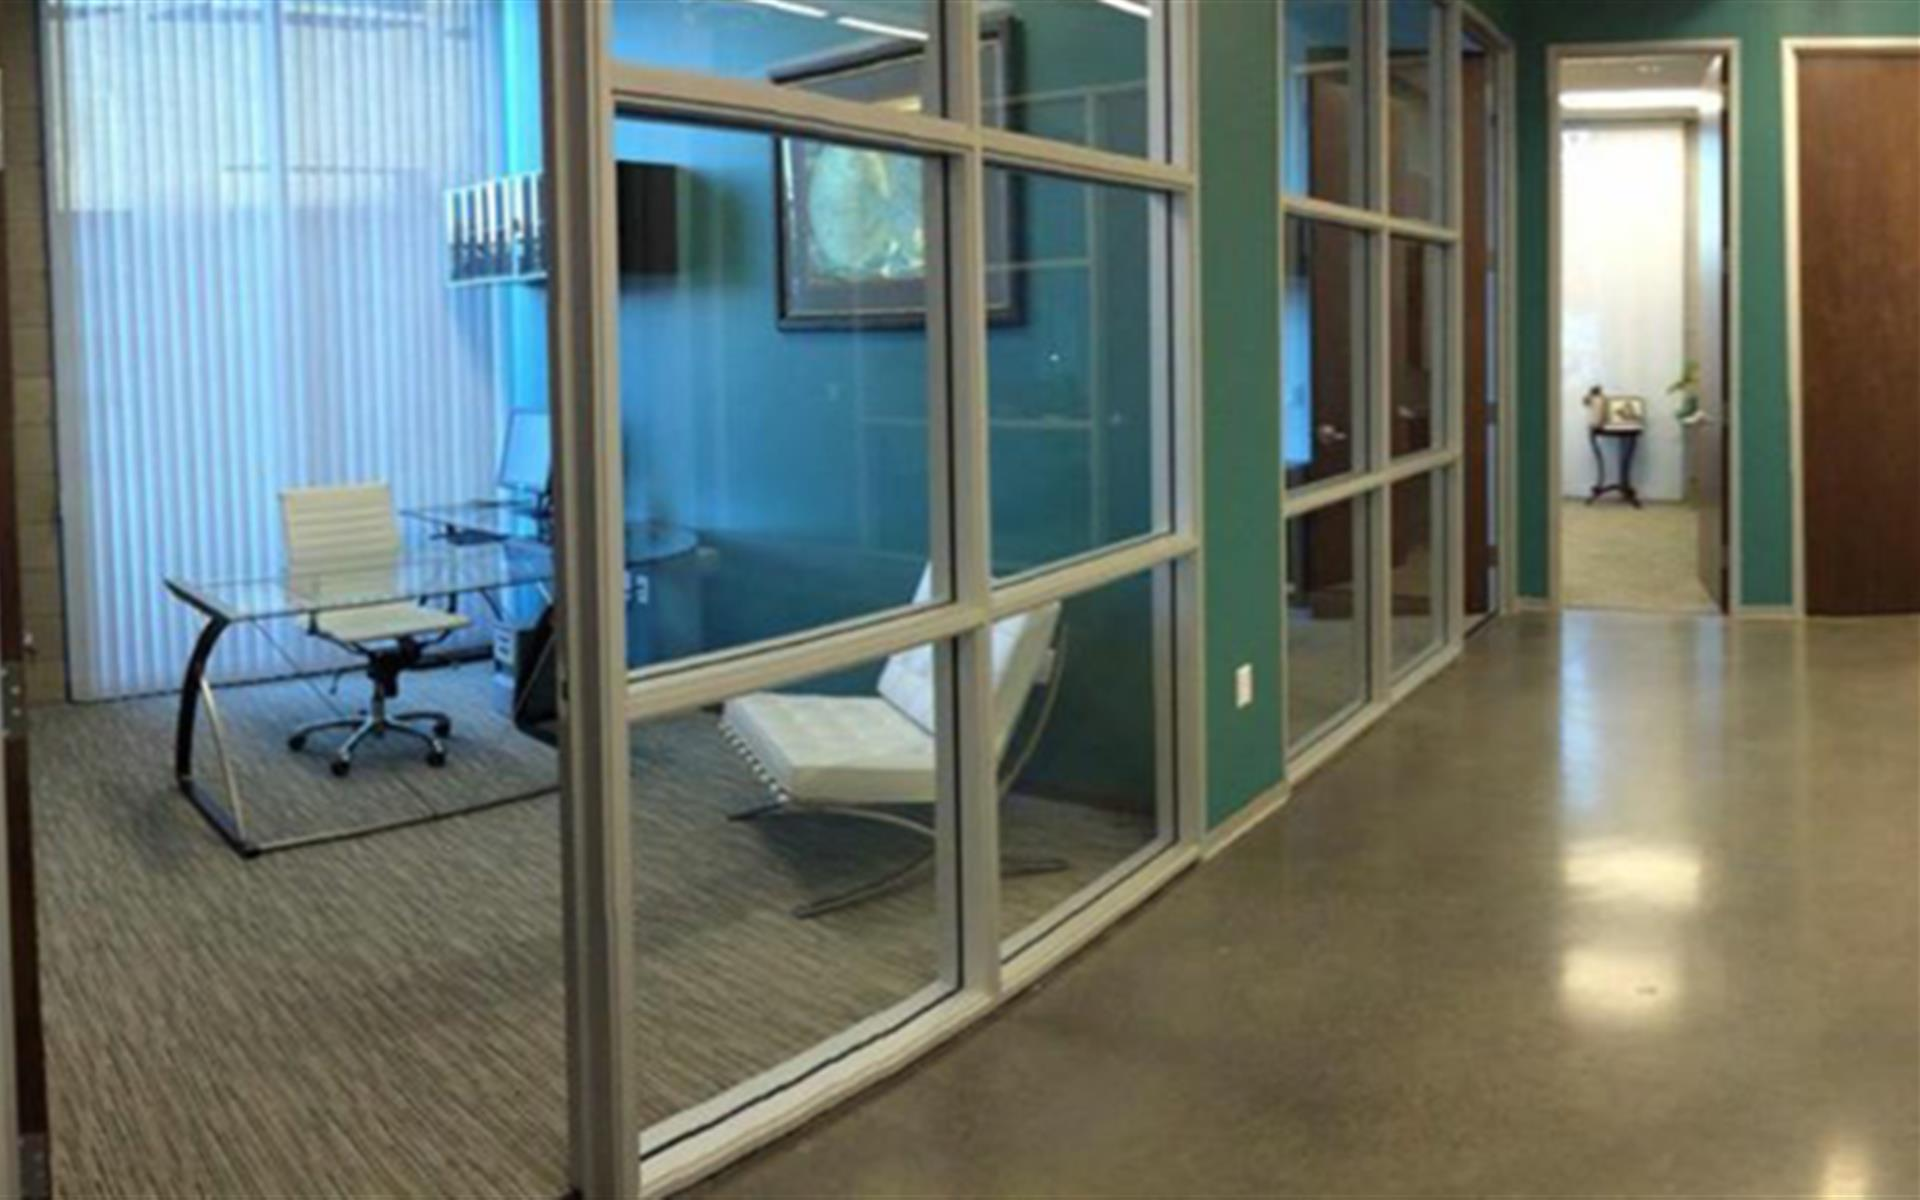 Crystal Cove Wealth Management - Contemporary Office Space in Irvine